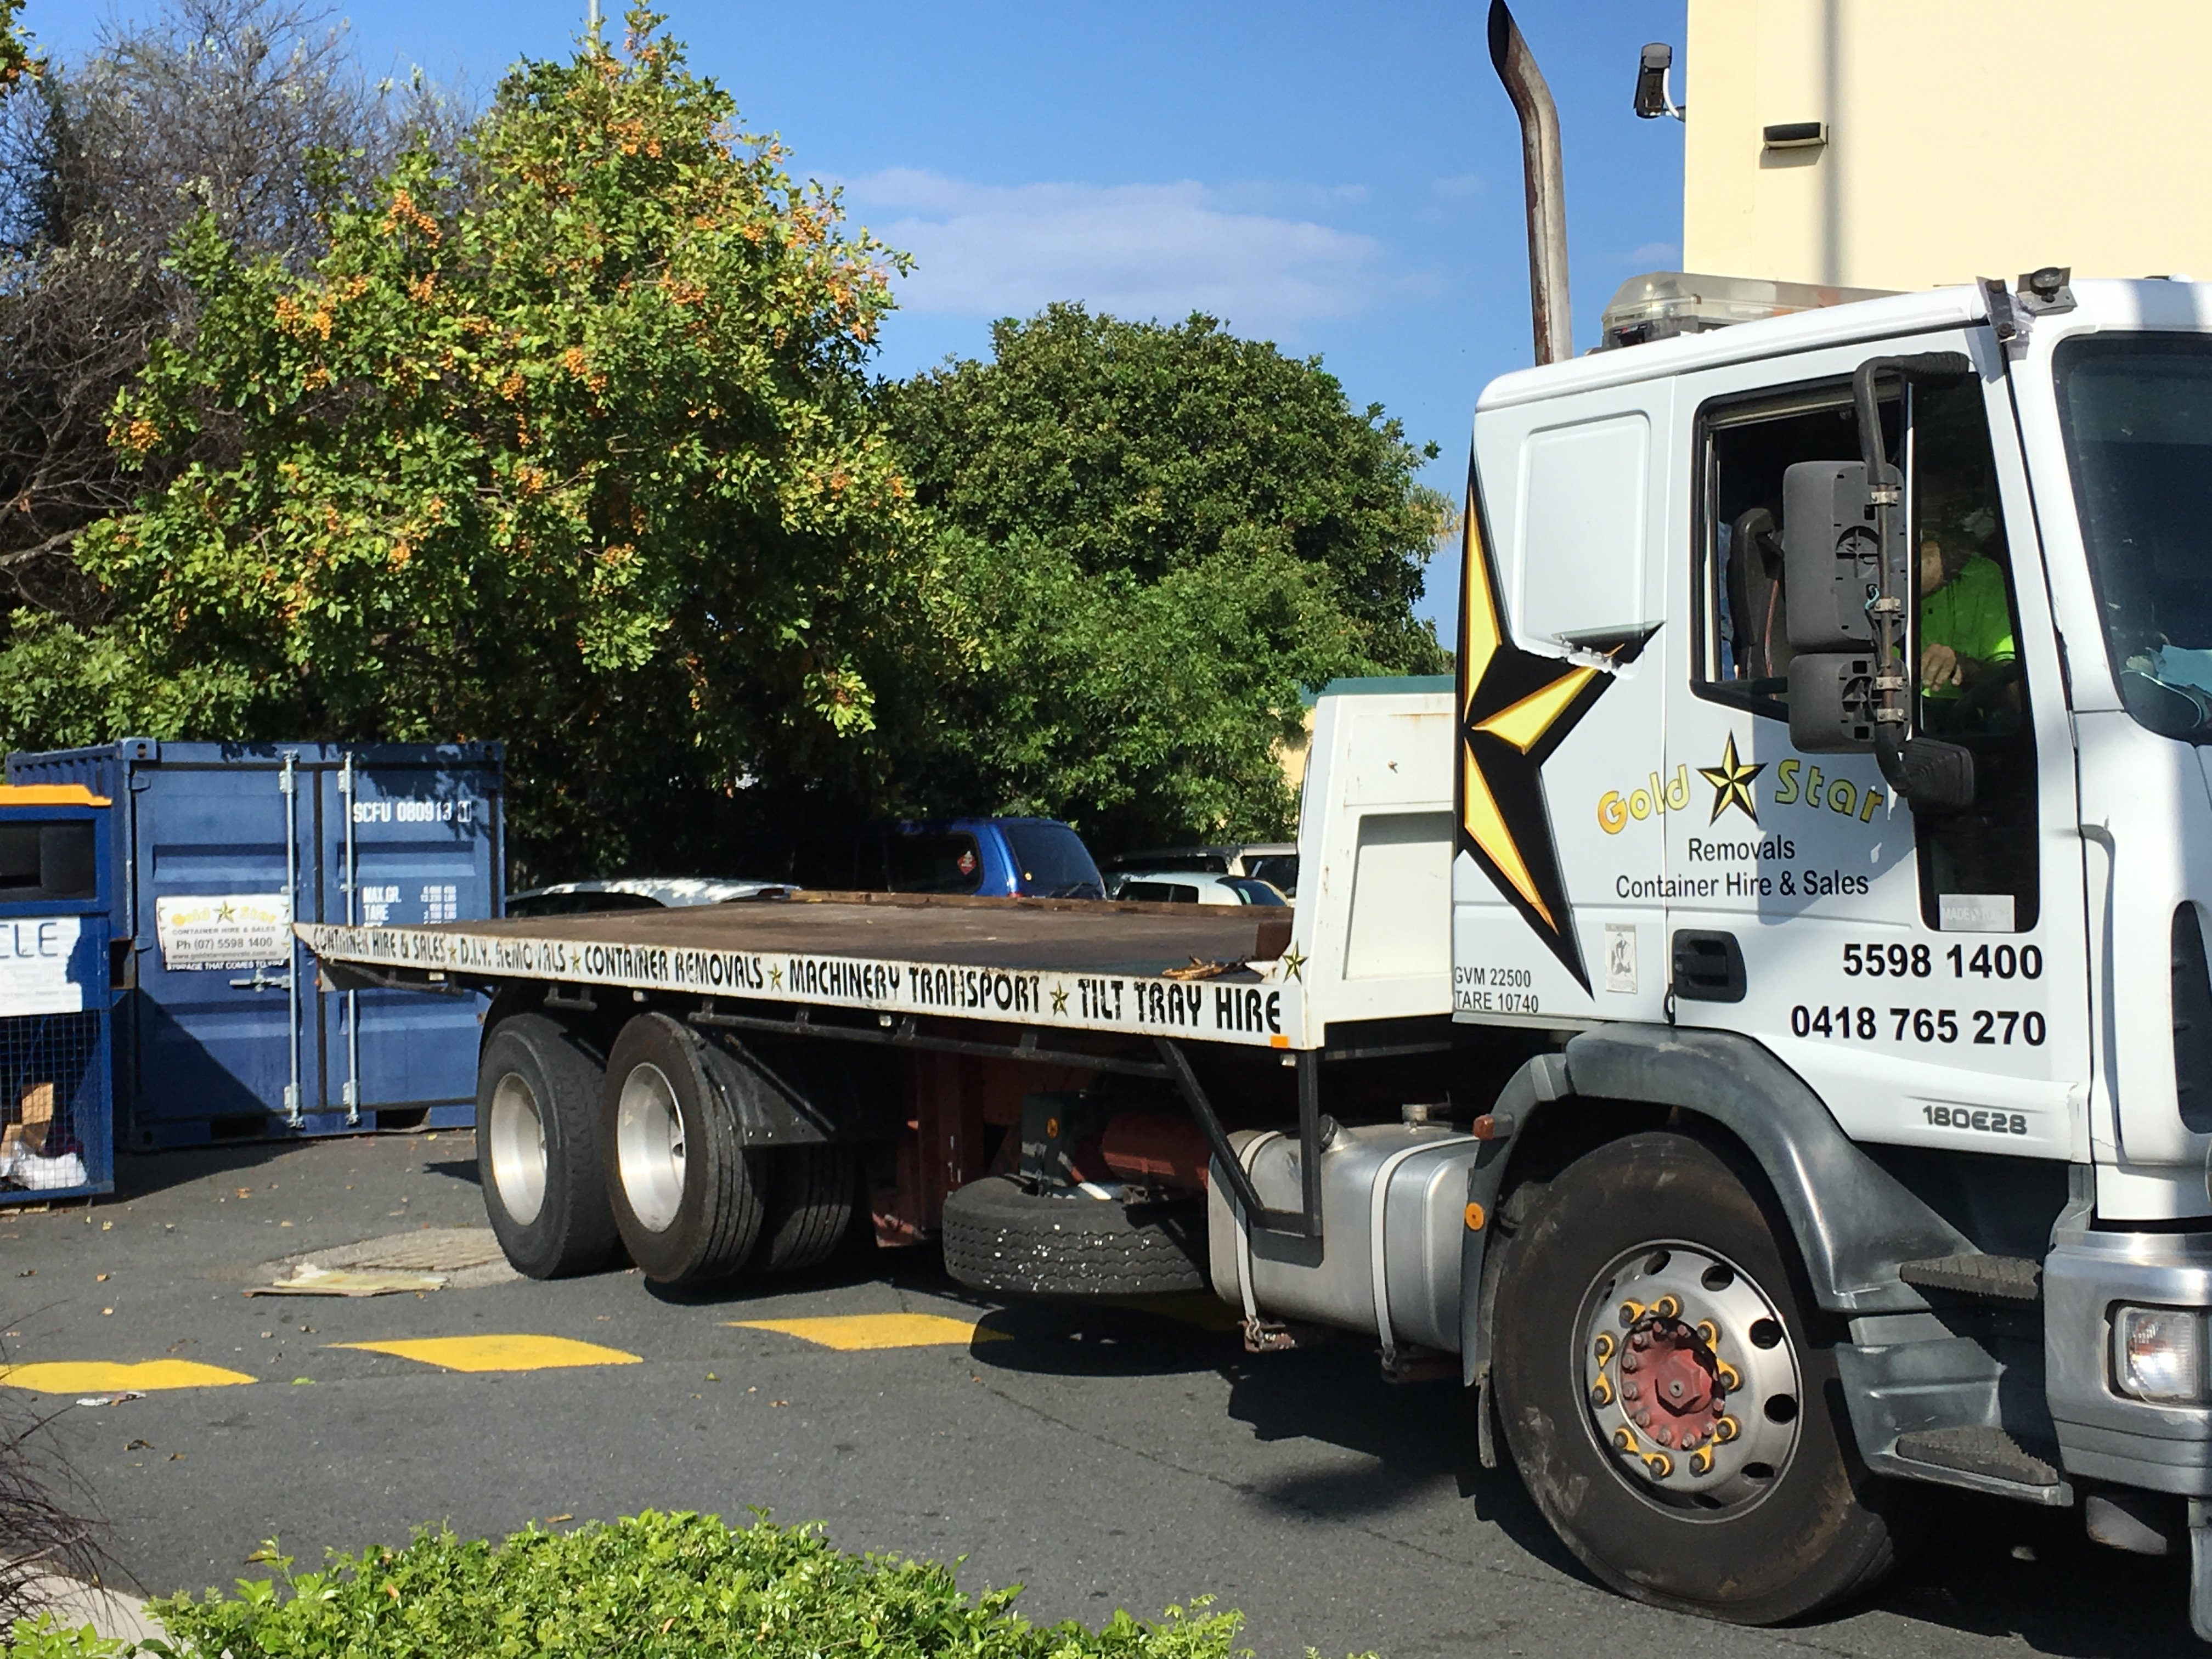 Gold Coast Truck Conveyor PODS Furniture Removalists